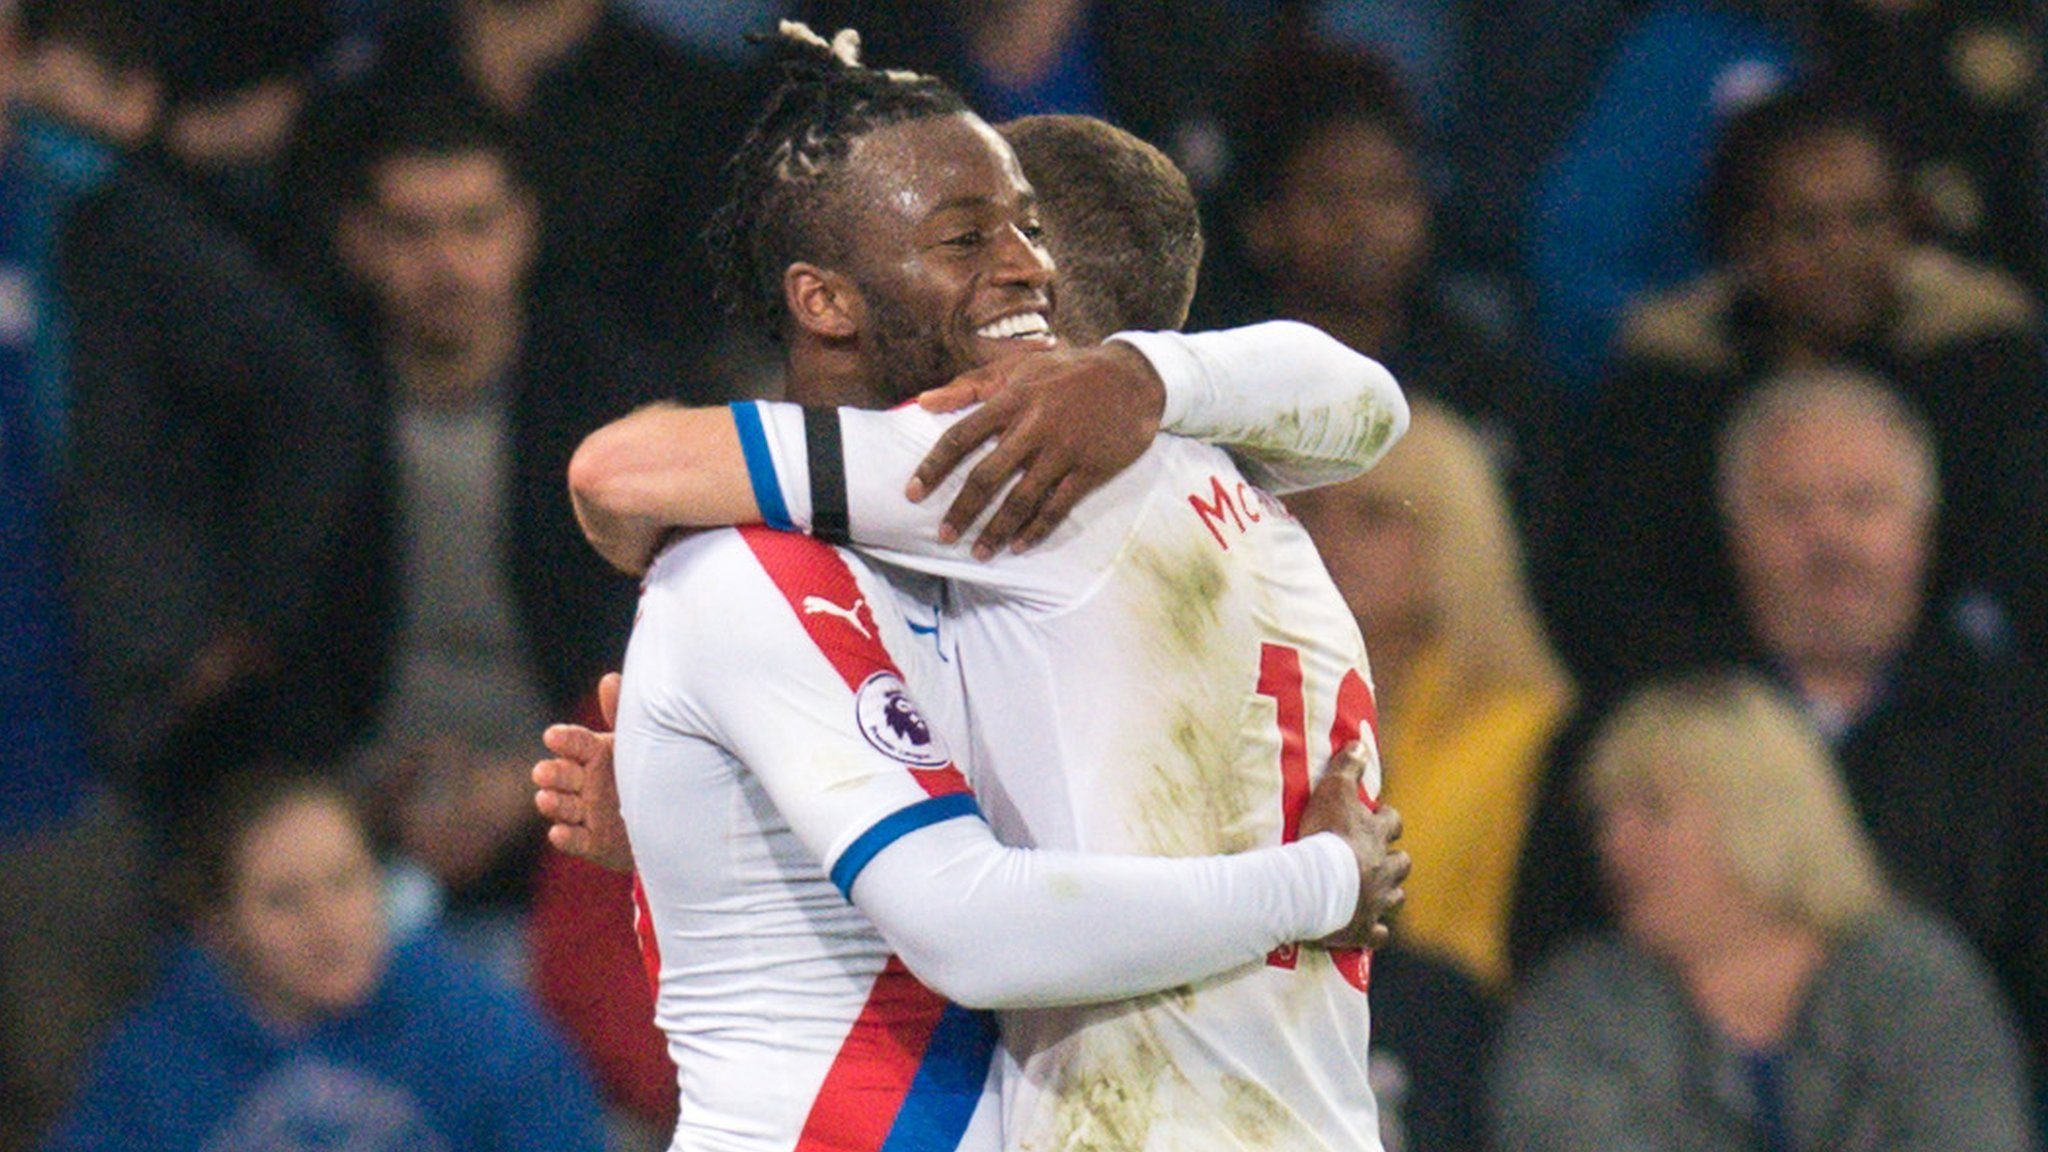 reputable site f06f4 62fe9 Leicester 1-4 Crystal Palace  Clinical Eagles beat Foxes - Michy Batshuayi,  Wilfried Zaha and Luka Milivojevic all get on the scoresheet as Crystal  Palace ...